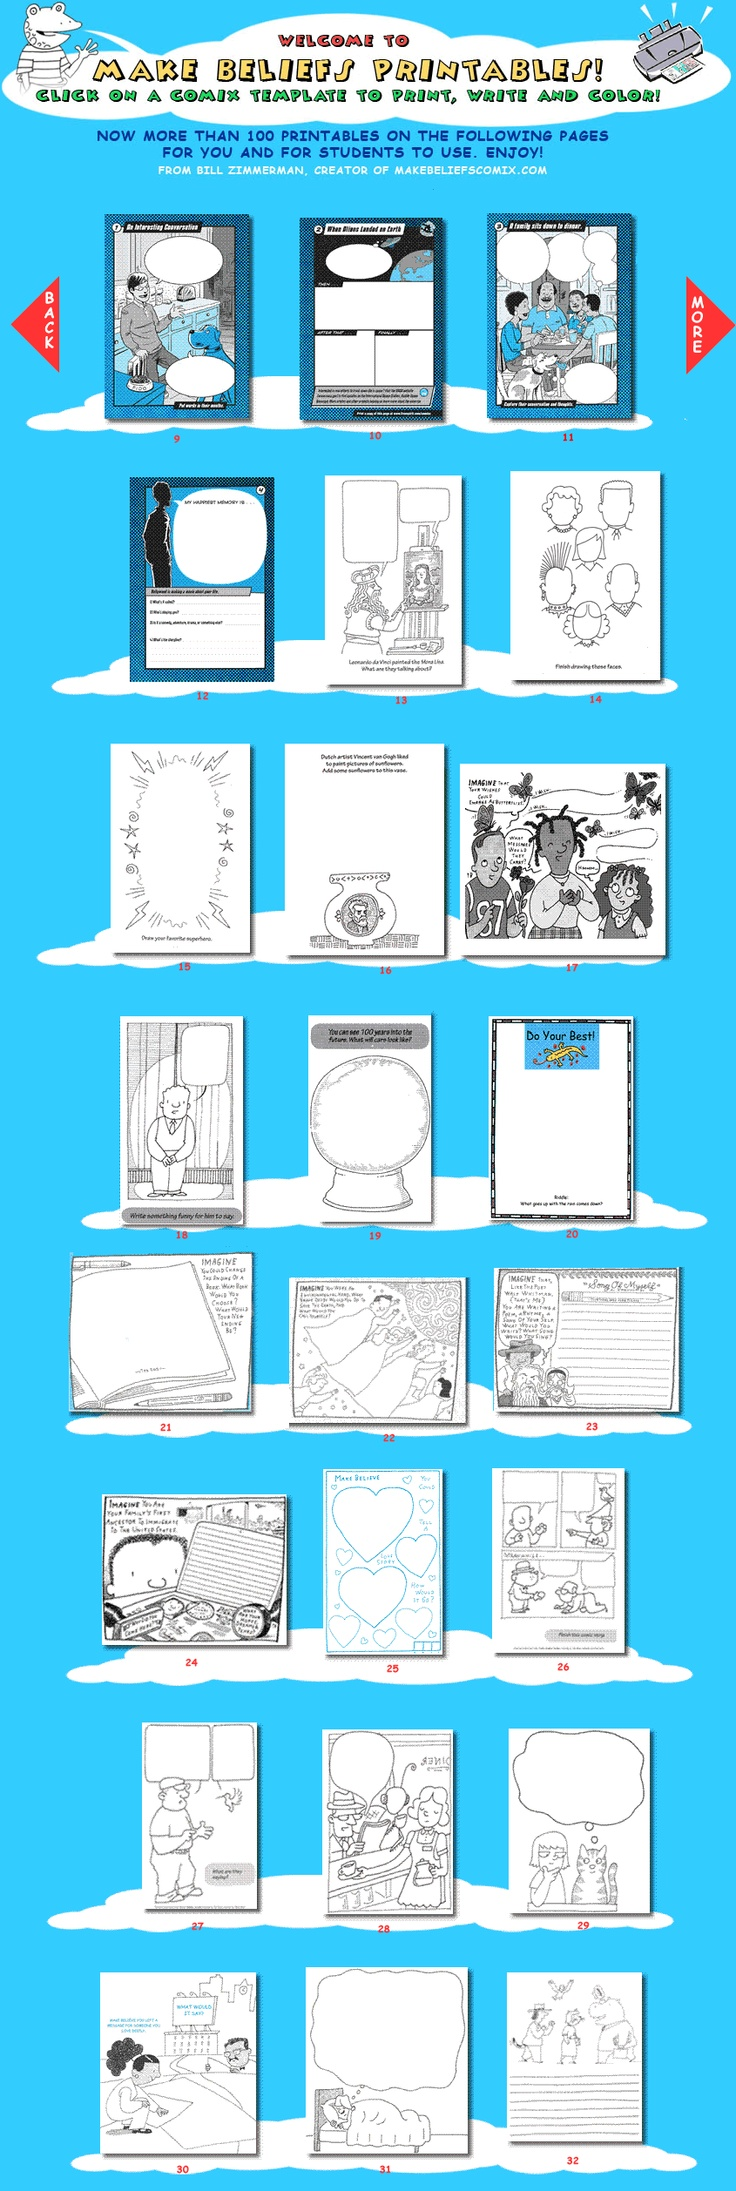 worksheet Solution Focused Brief Therapy Worksheets 780 best counseling worksheets printables images on pinterest site with 100s of free printable to use in counseling